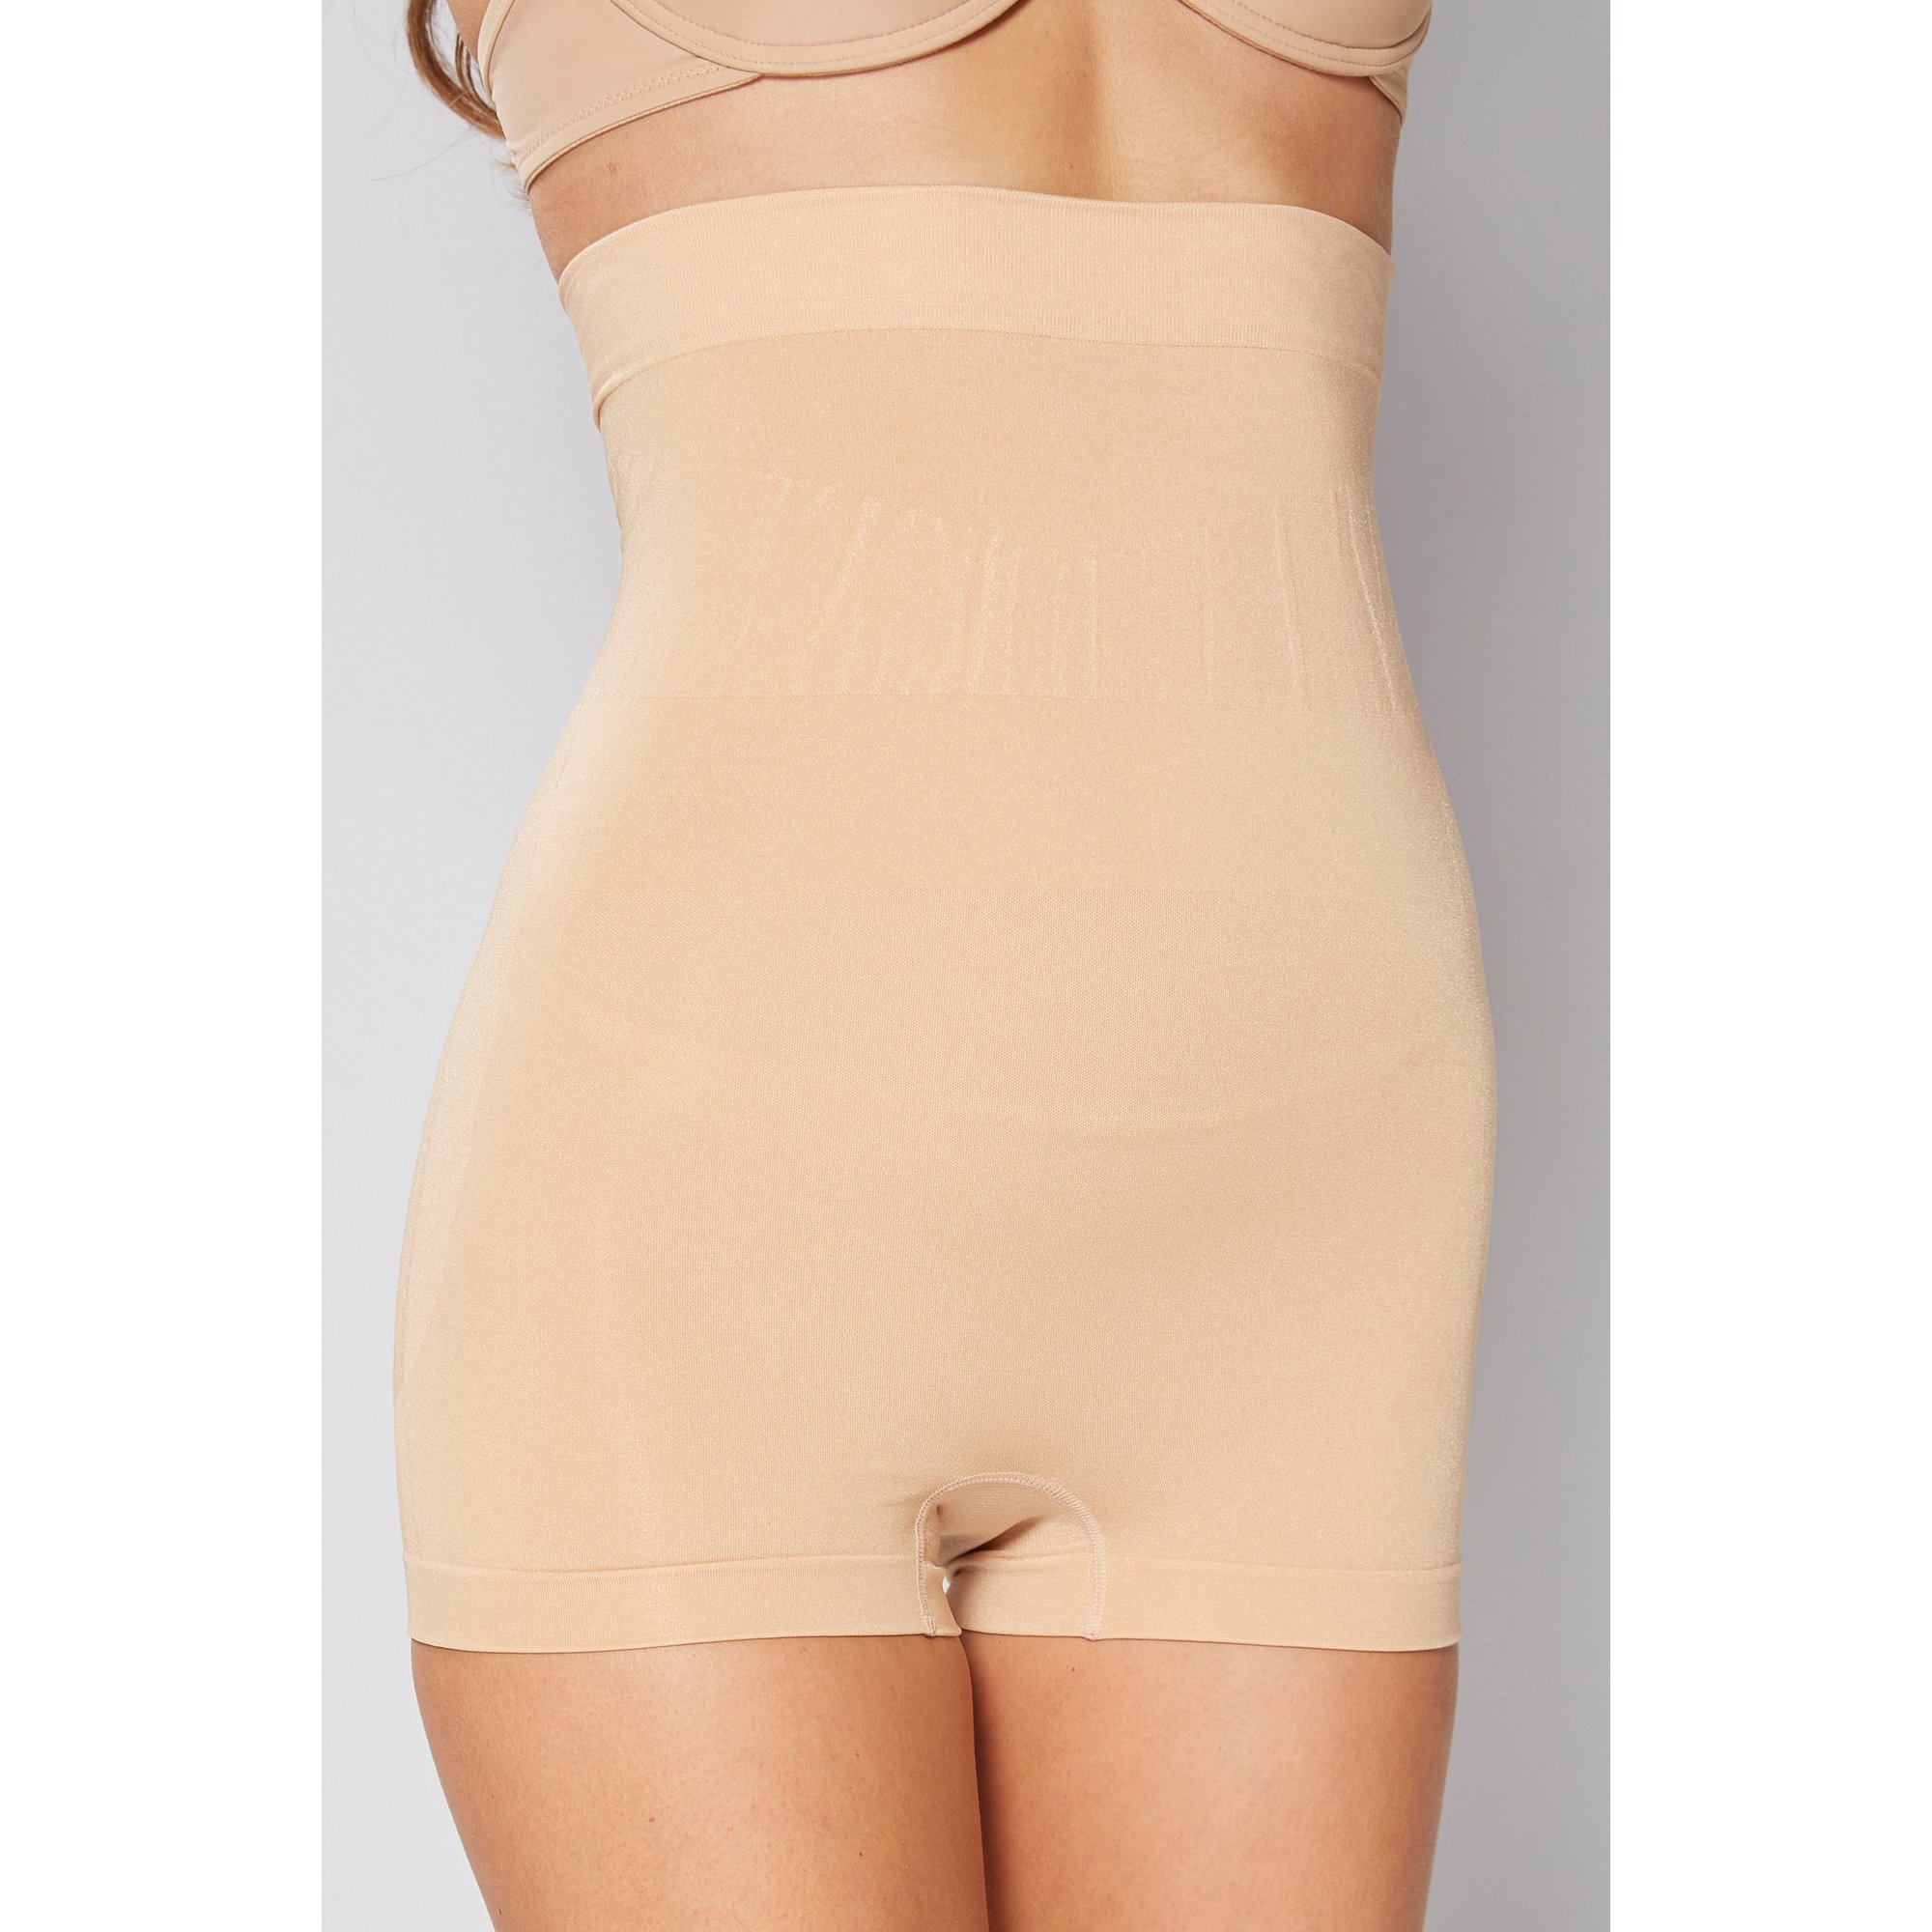 Image of High Waisted Control Shorts